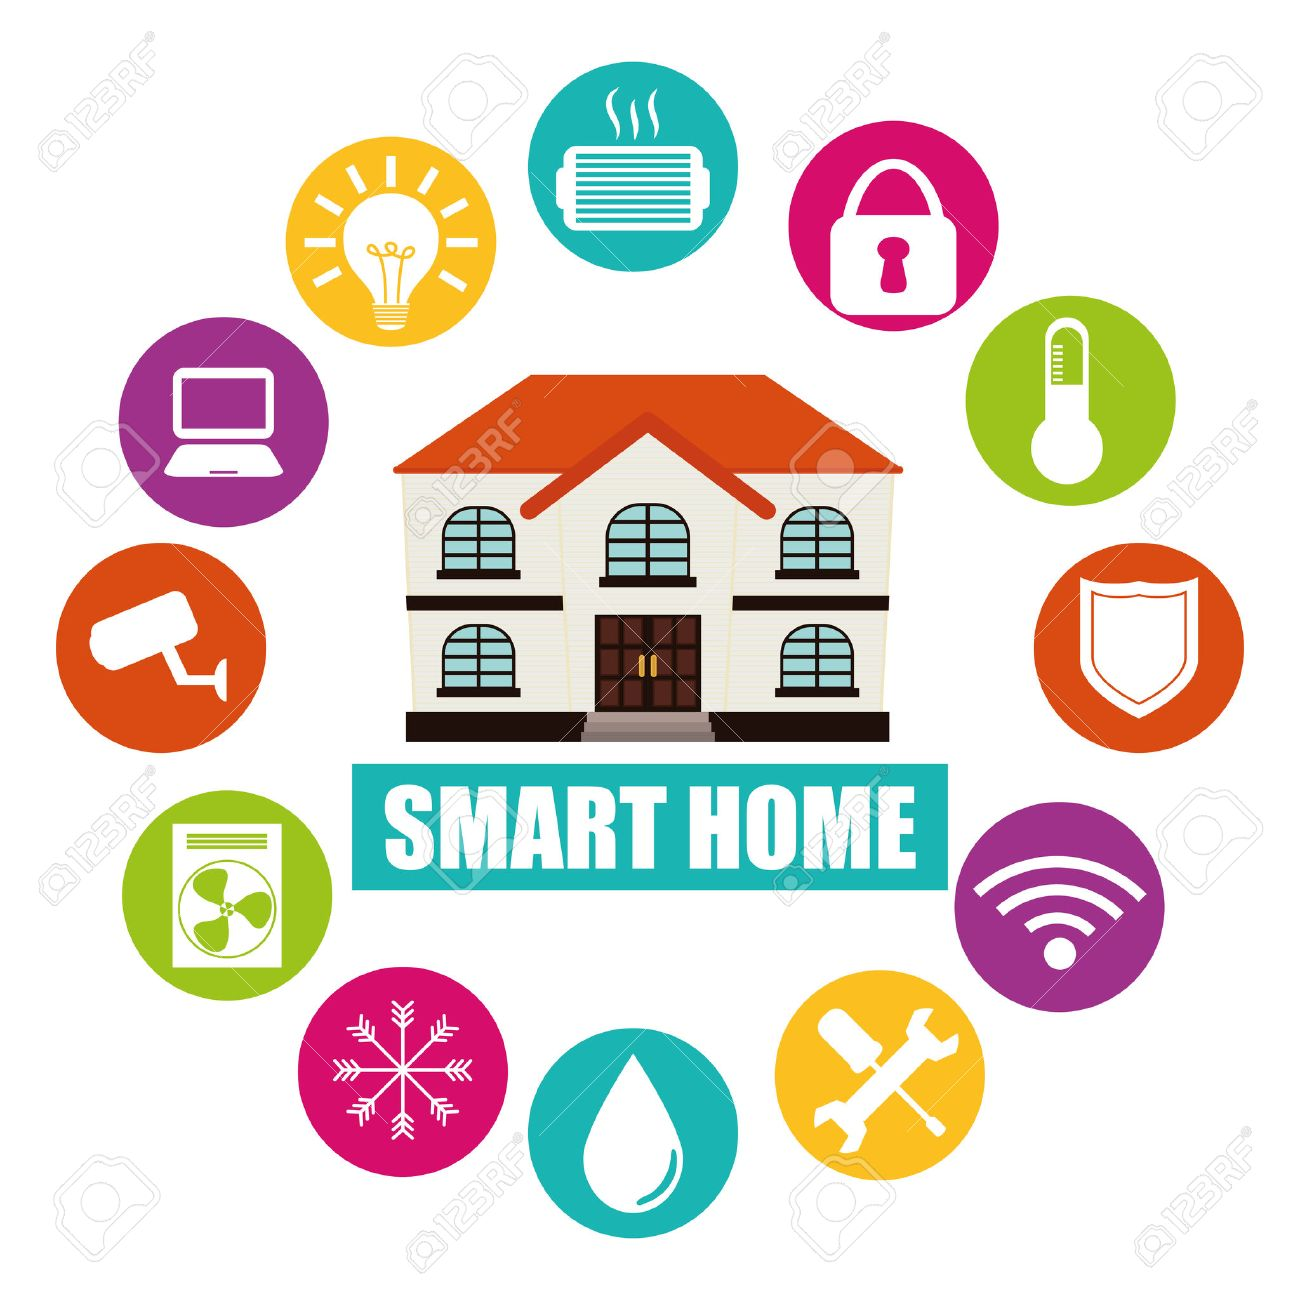 Smart Home Design, Vector Illustration Eps10 Graphic Stock Vector   36825880